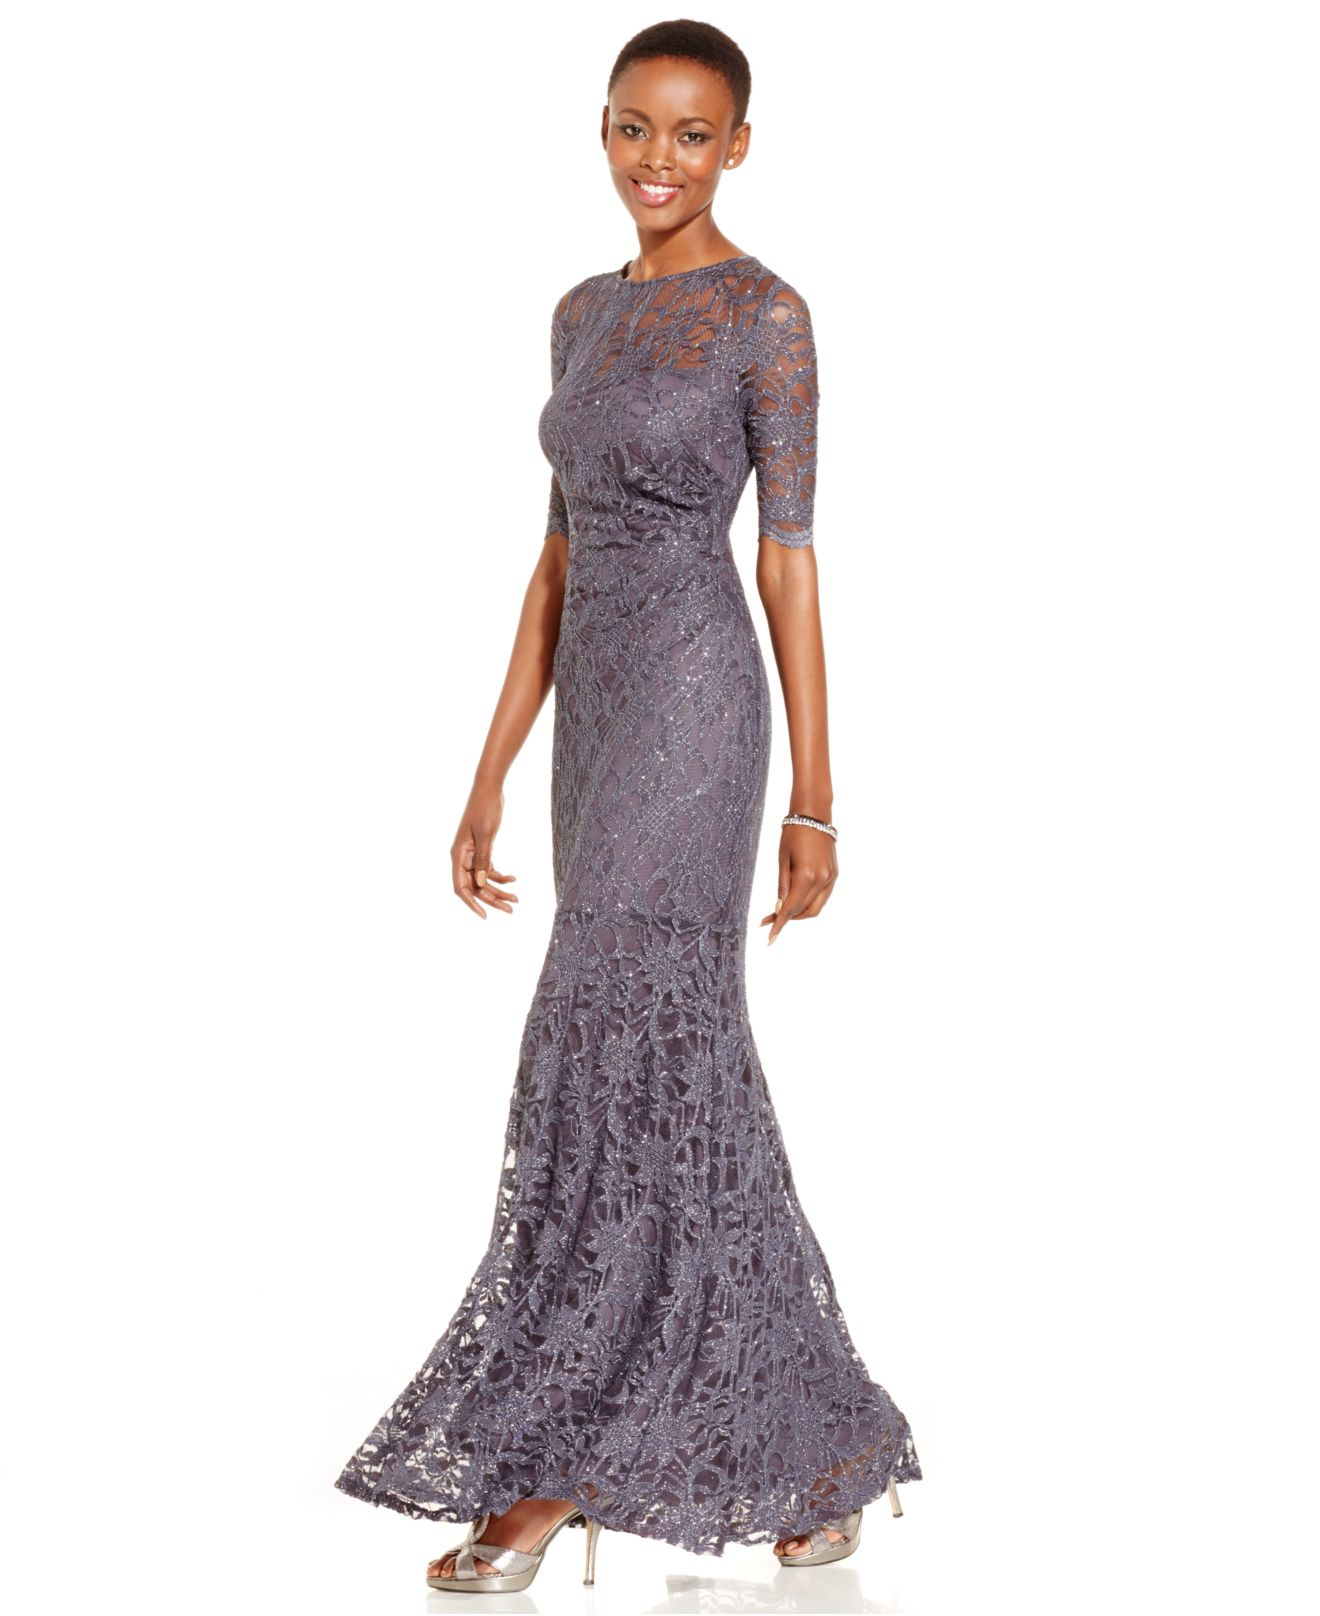 Lyst - Xscape Petite Glitter Lace Mermaid Gown in Metallic